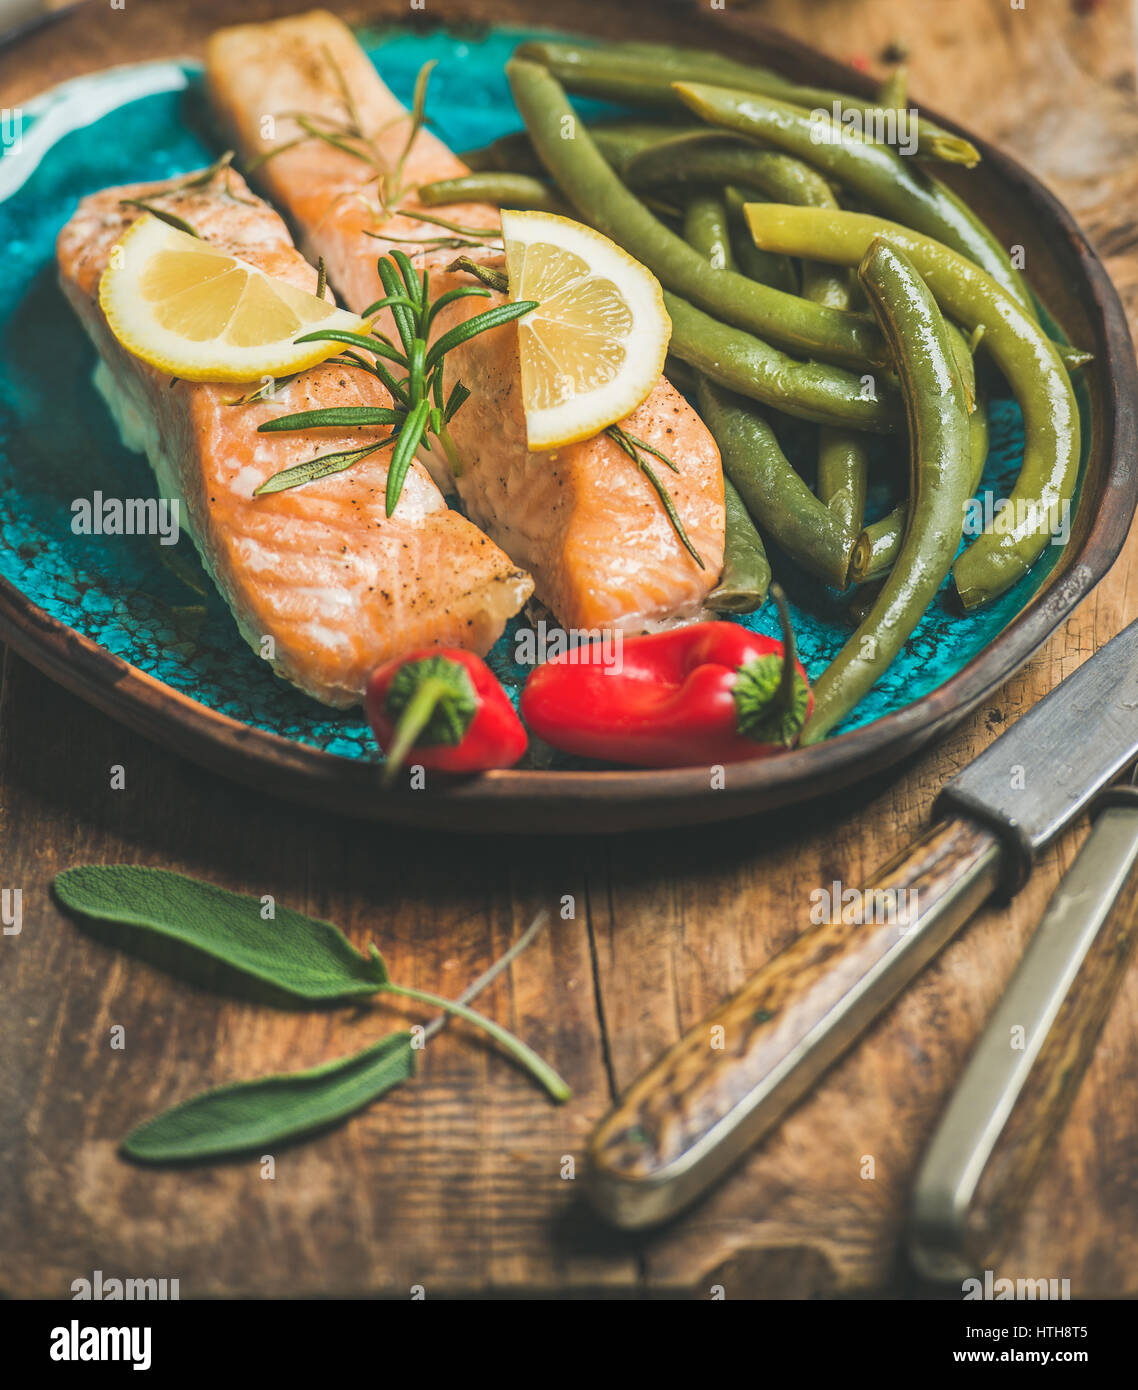 Roasted salmon with lemon, rosemary, chilli pepper and beans - Stock Image